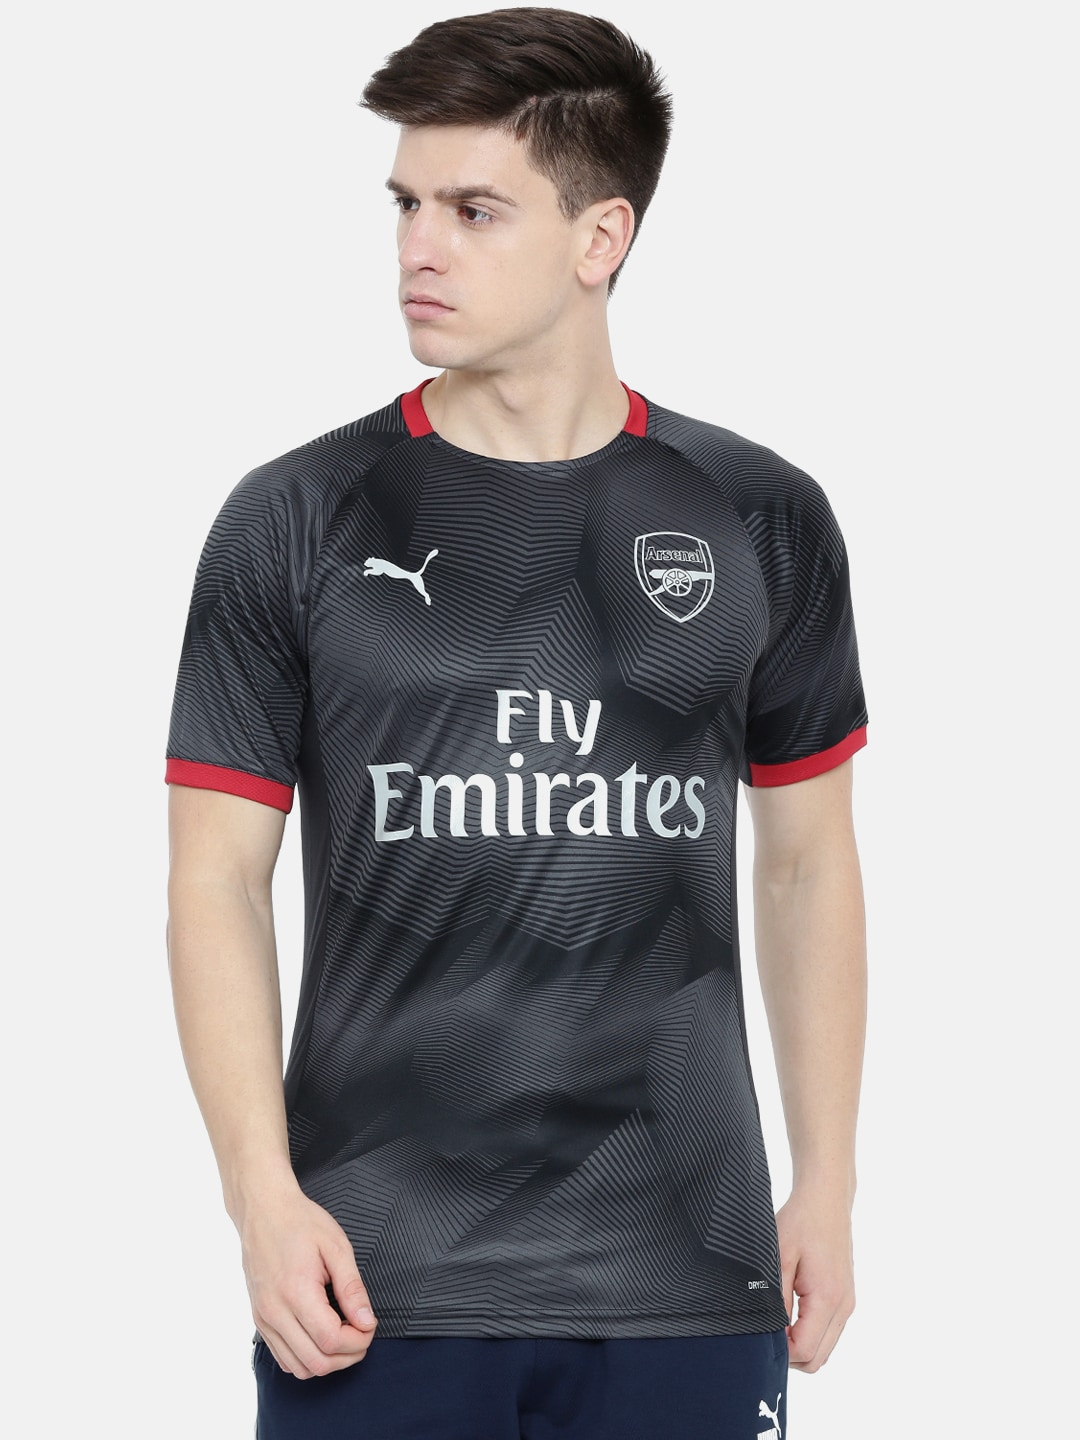 70a7cd29596 Arsenal - Buy Arsenal Clothing   Accessories Online in India